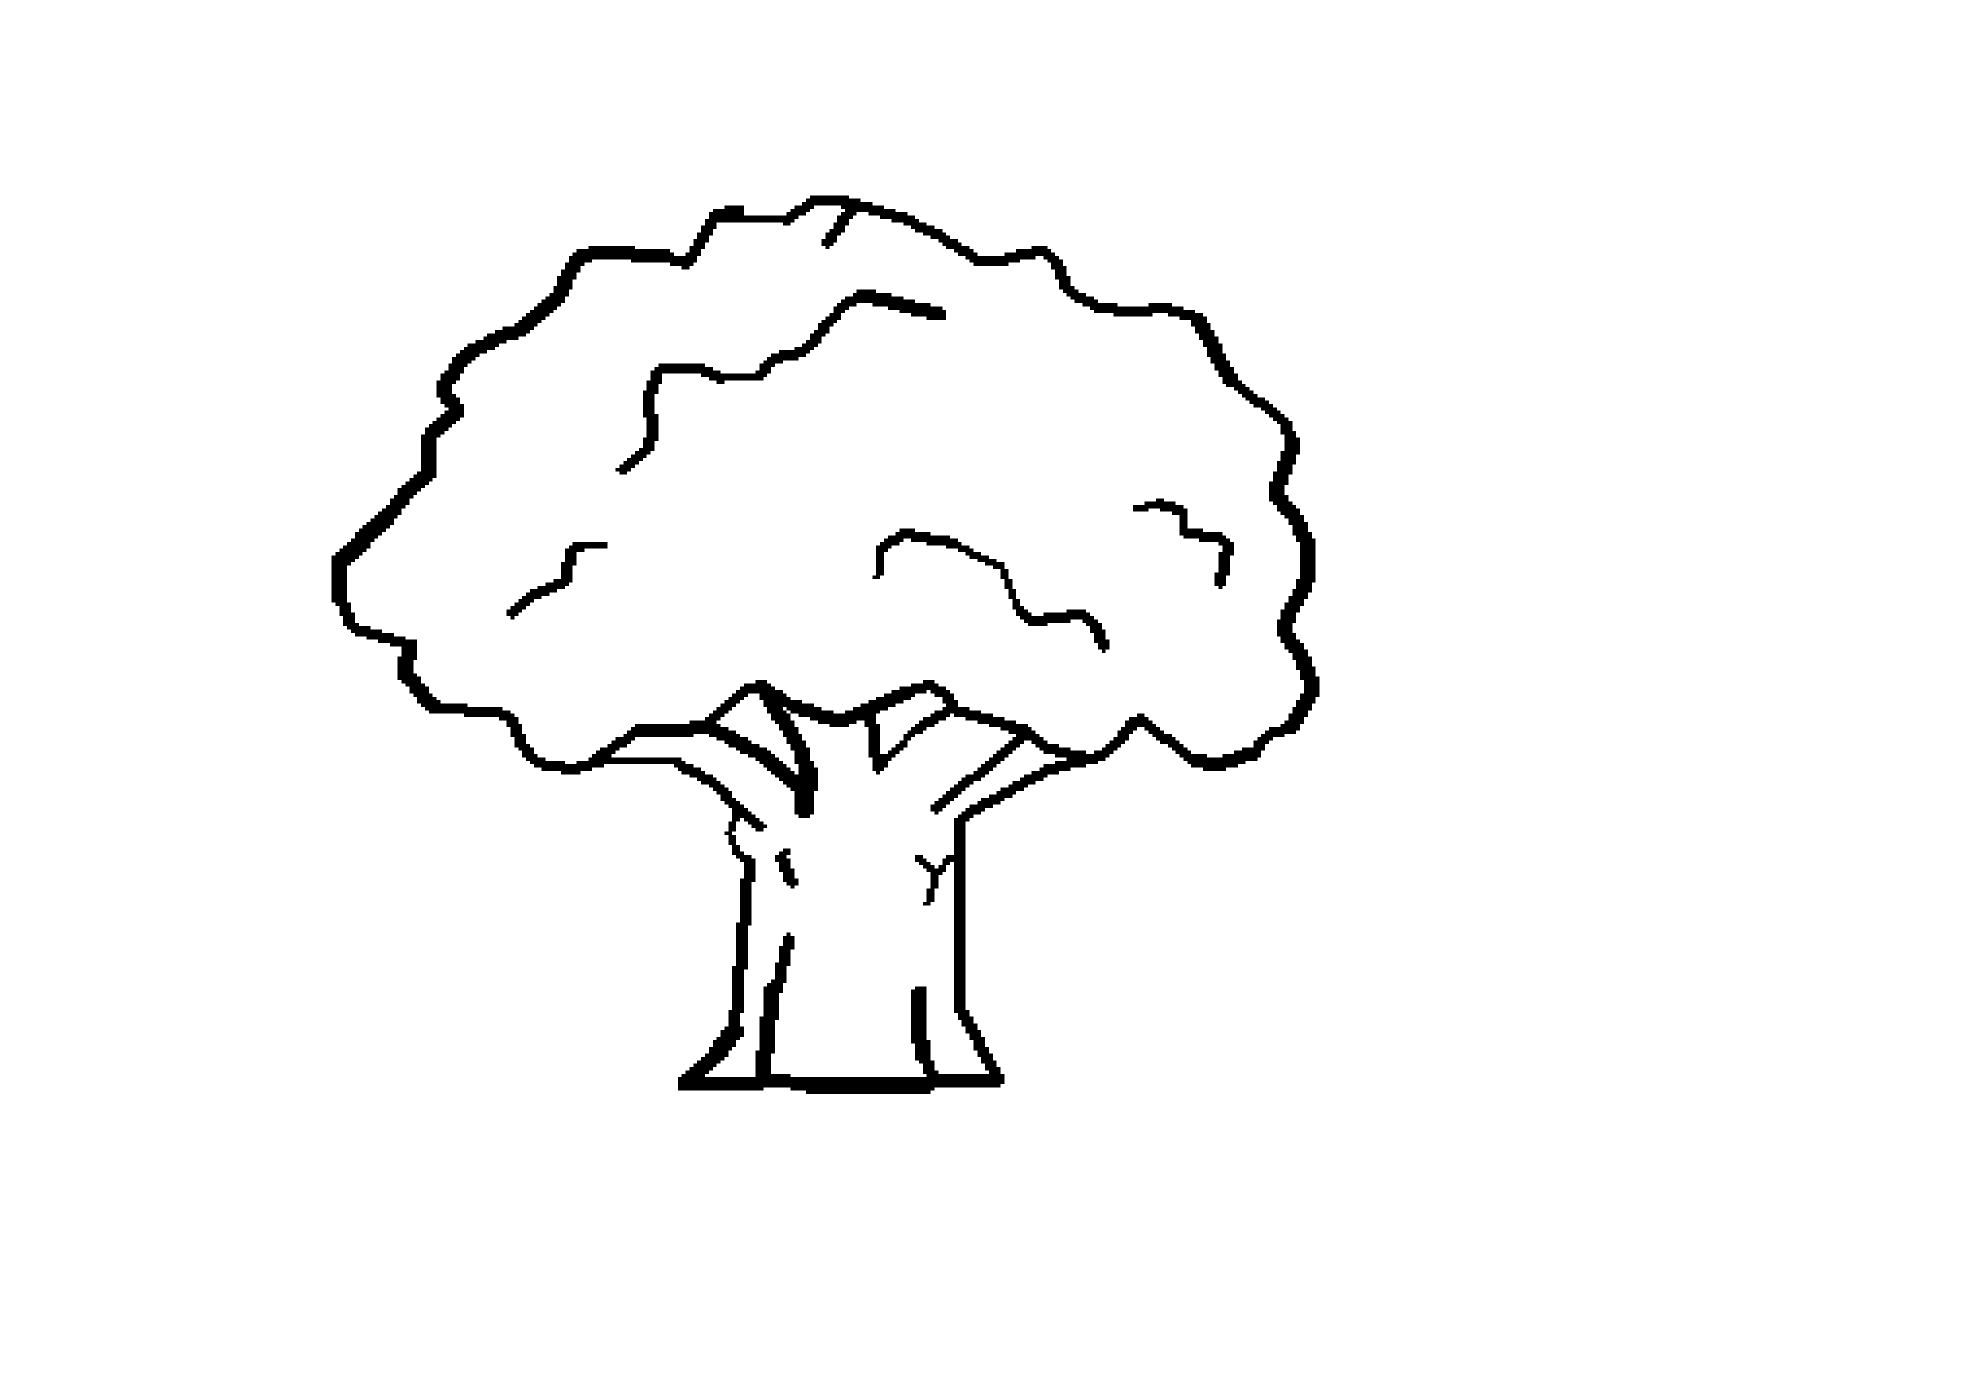 Free Tree Drawings Black And White, Download Free Clip Art